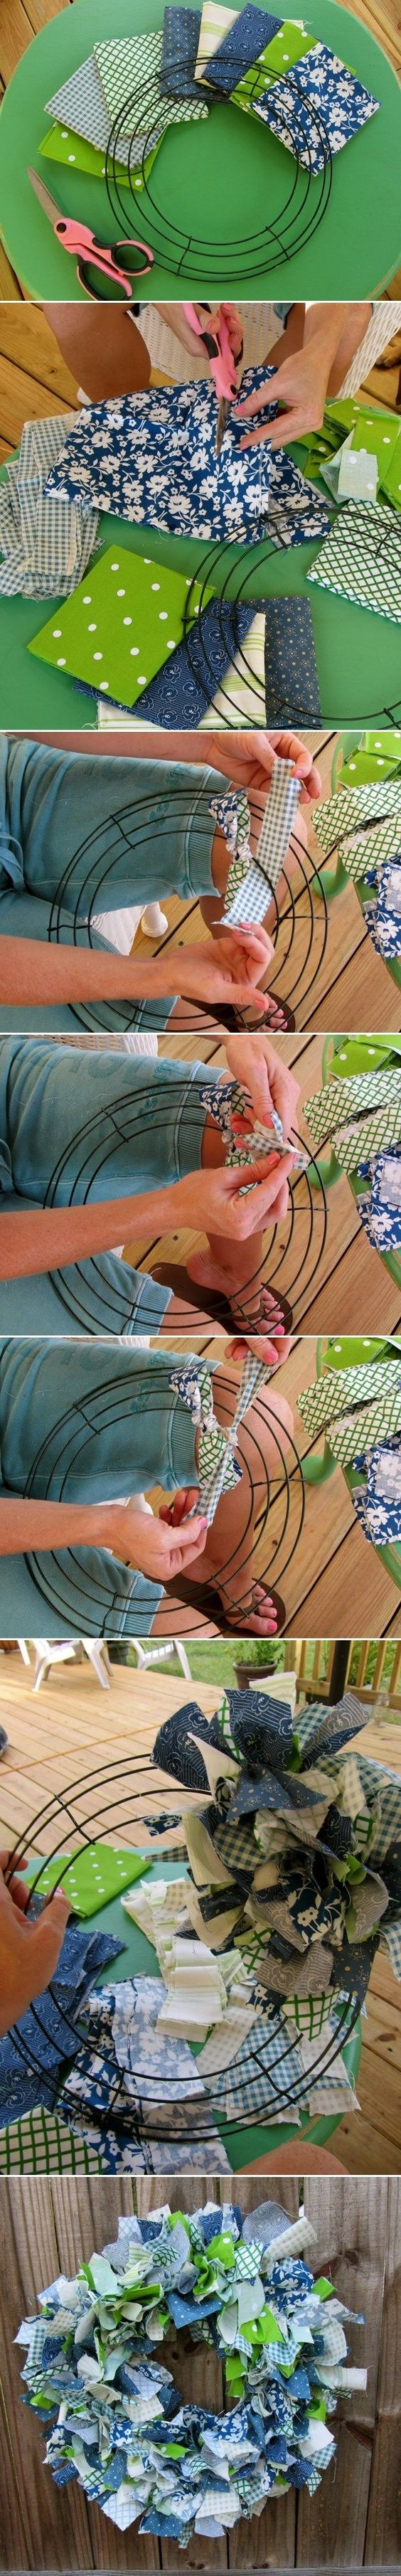 DIY Fabric Wreath Tutorial by Colbarc